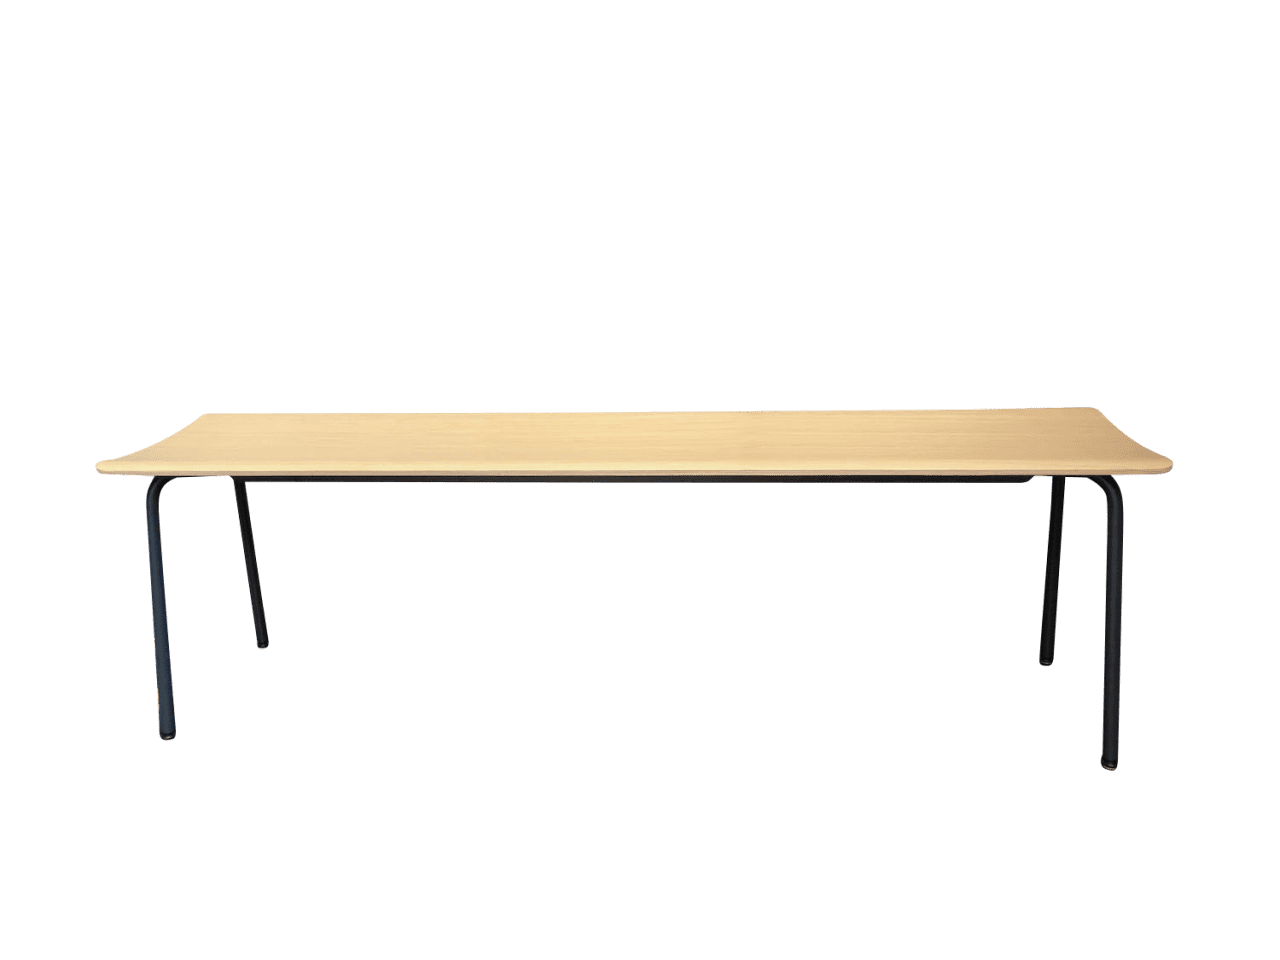 Bank Four Seeting Bench 160